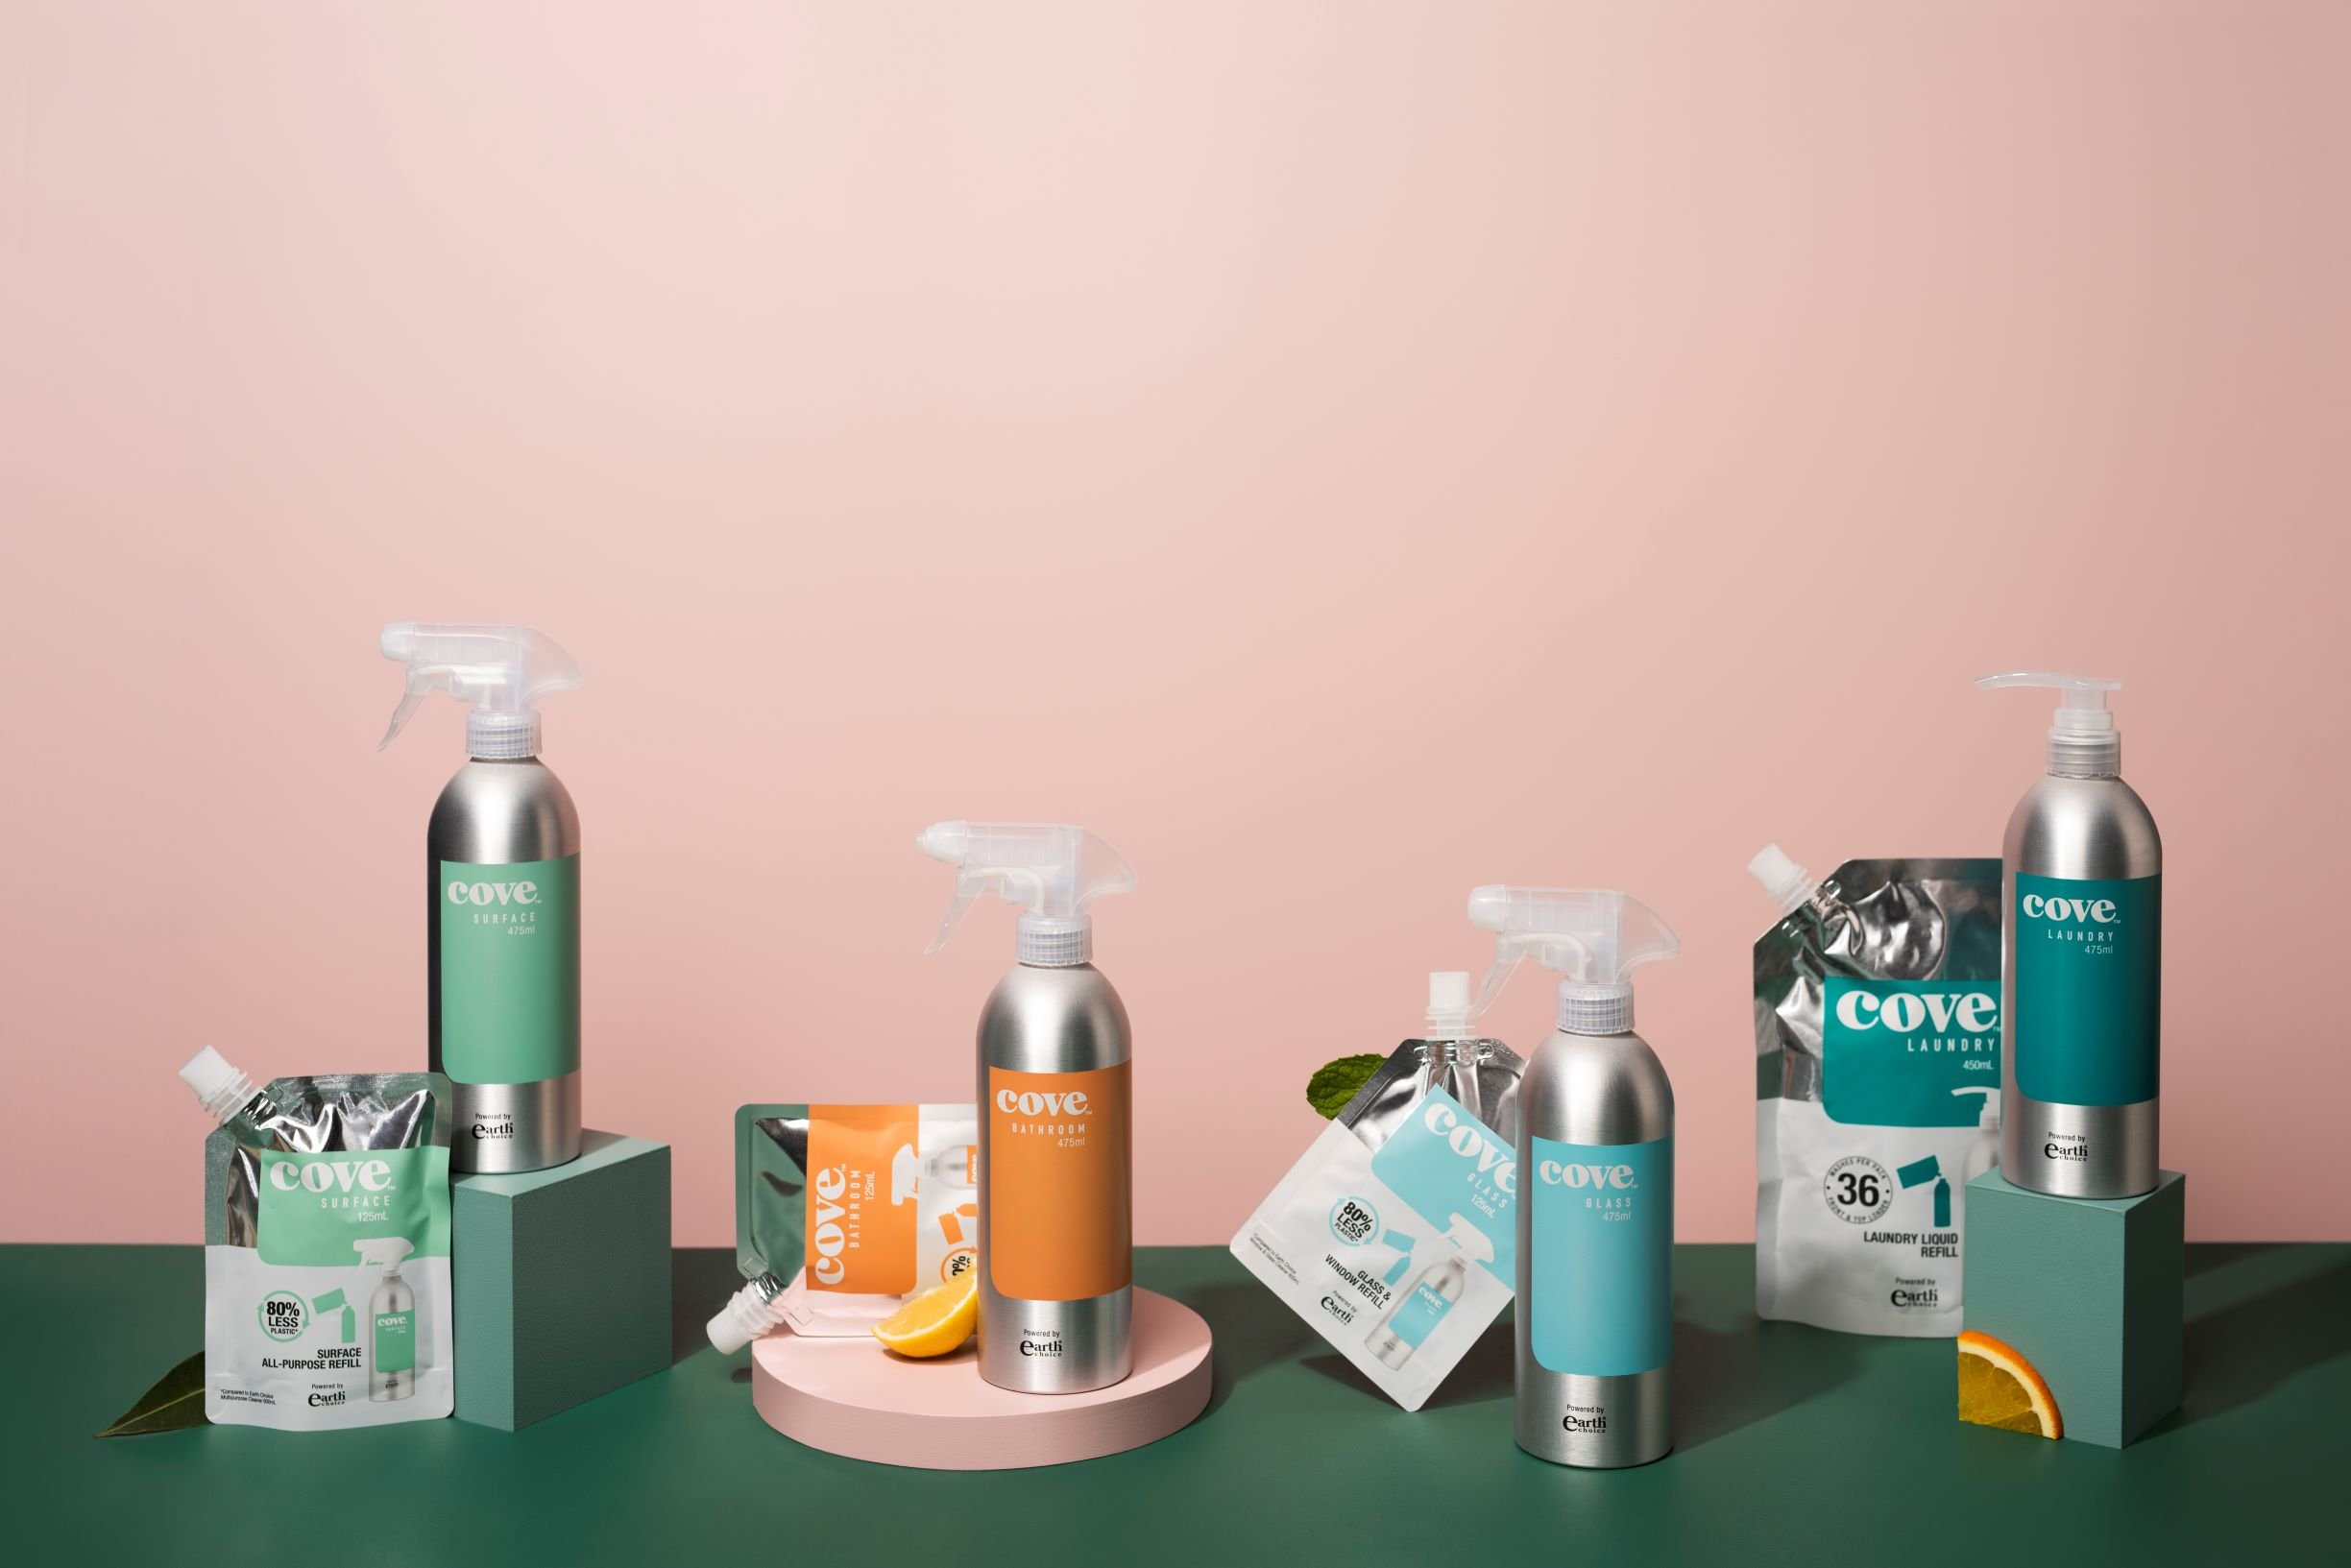 COVE resize 49 Cove inspires sustainable cleaning through good design